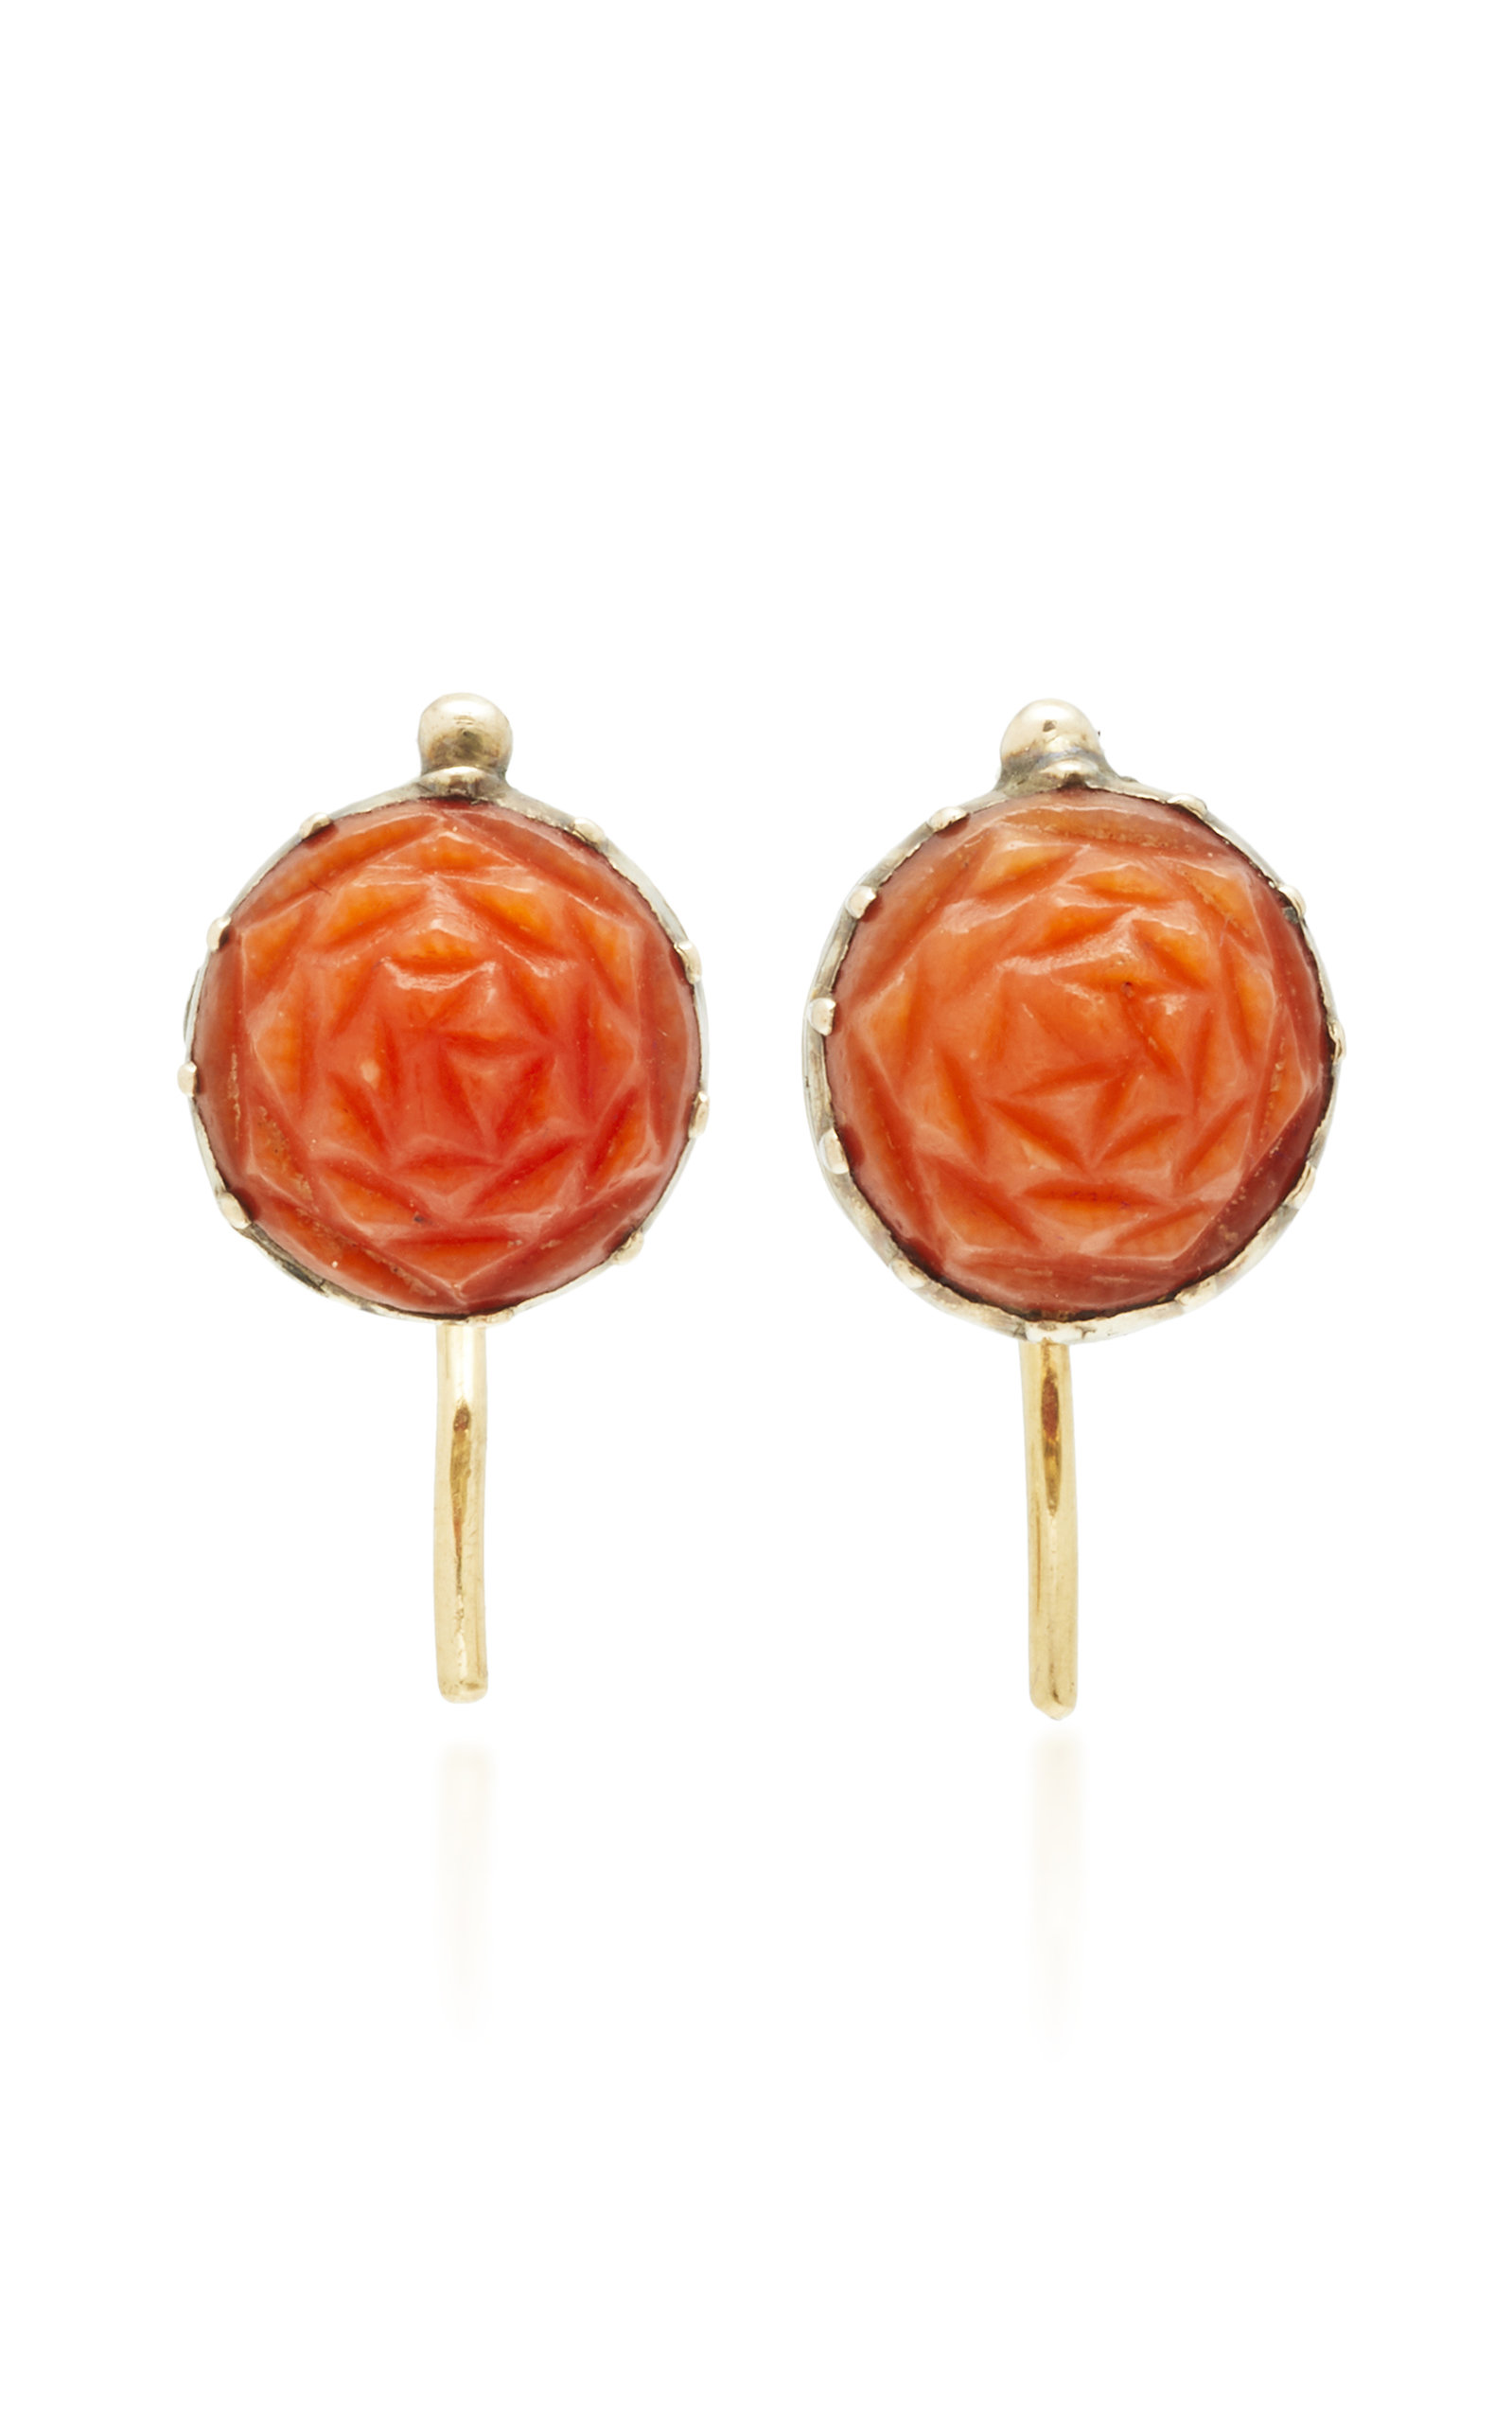 VELA ONE-OF-A-KIND GEORGIAN CARVED CORAL ROSE EARRINGS